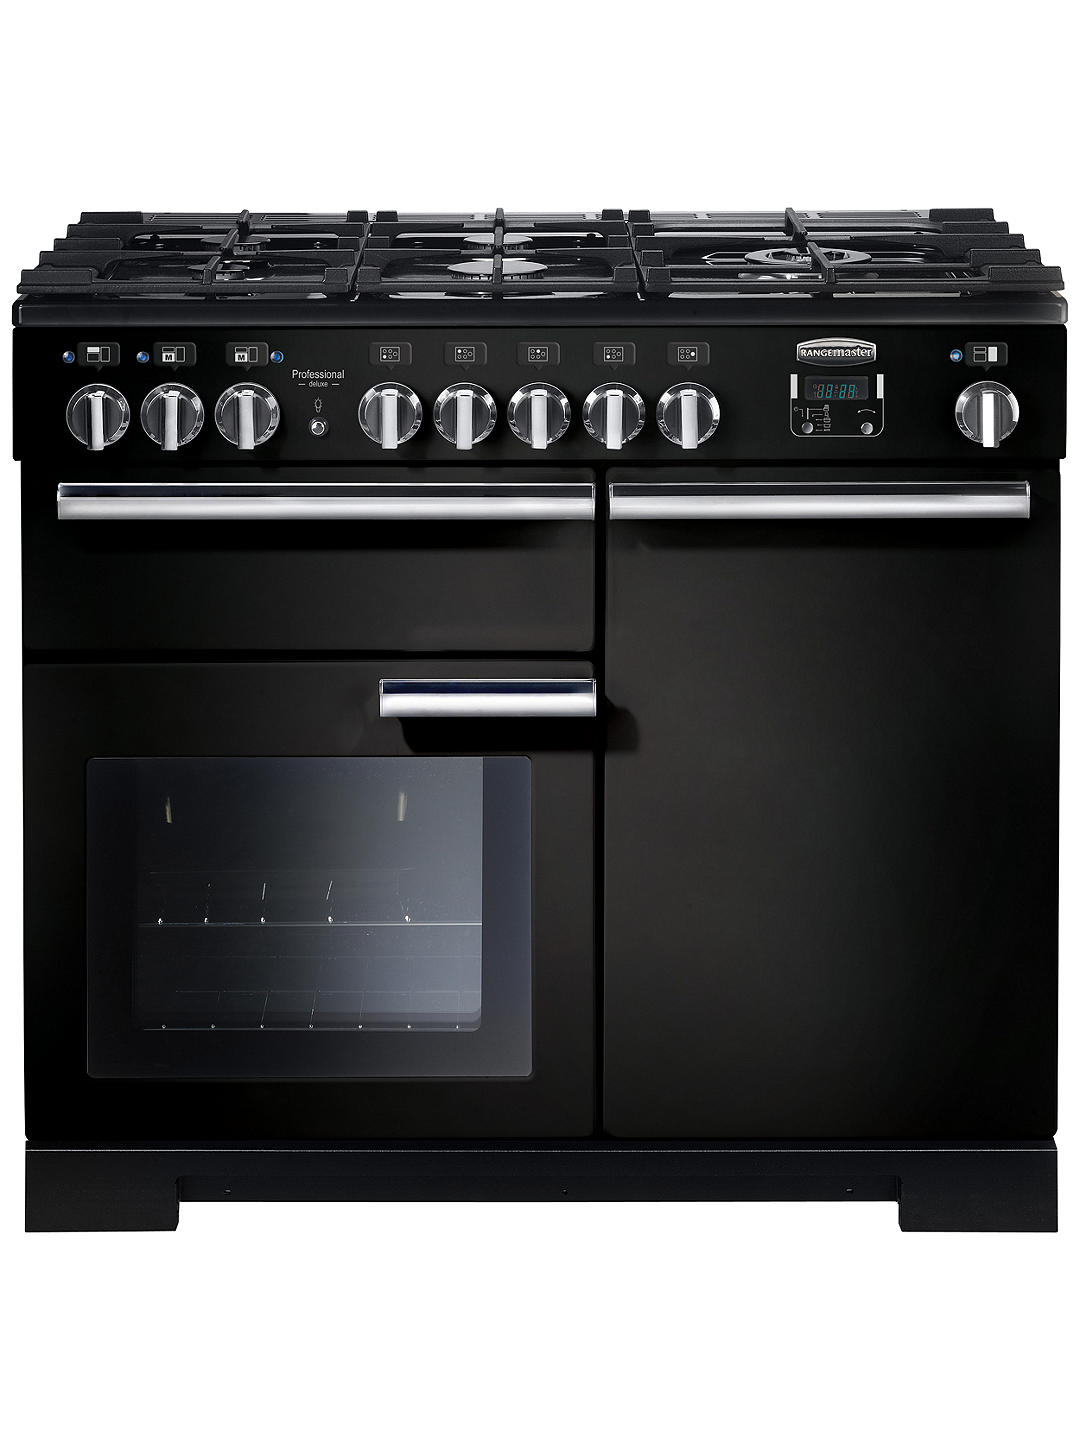 Buy Rangemaster Professional Deluxe 100 Dual Fuel Range Cooker, Black/Chrome Trim Online at johnlewis.com